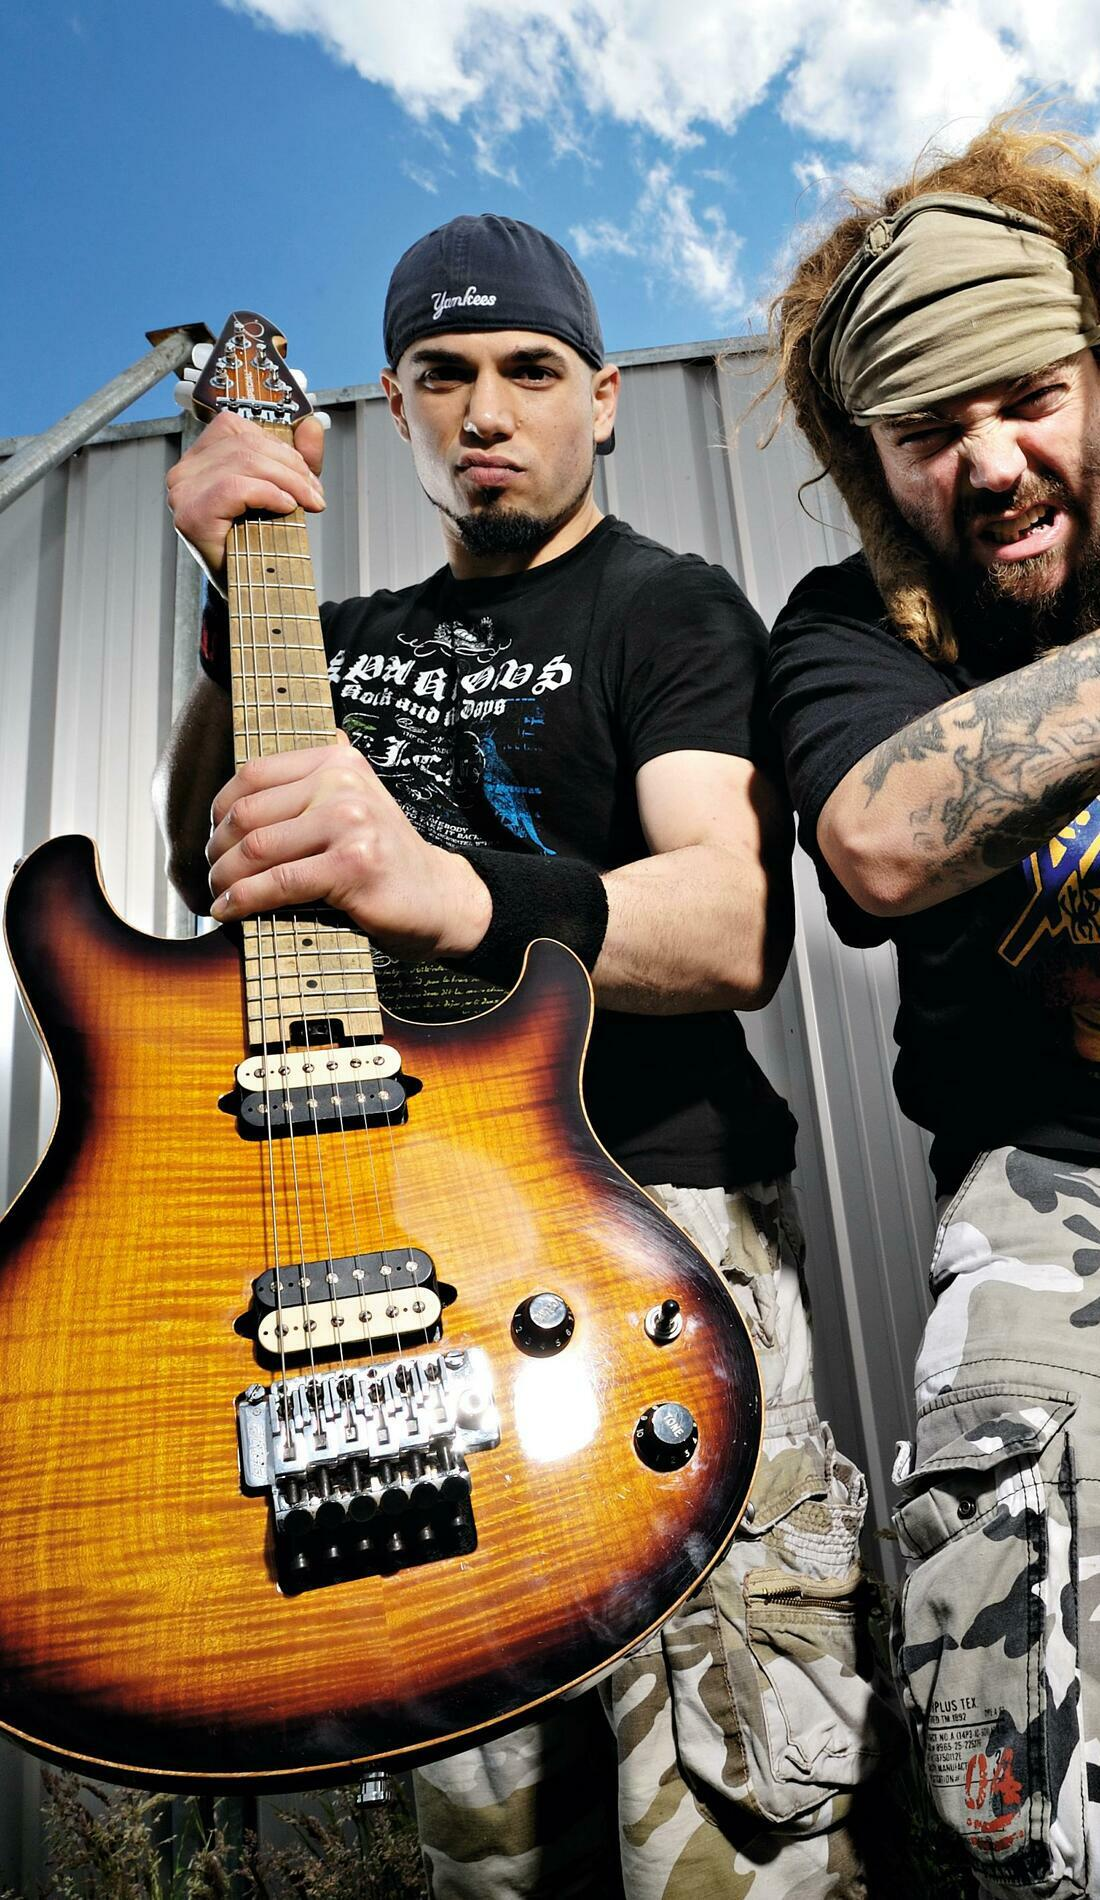 A Soulfly live event